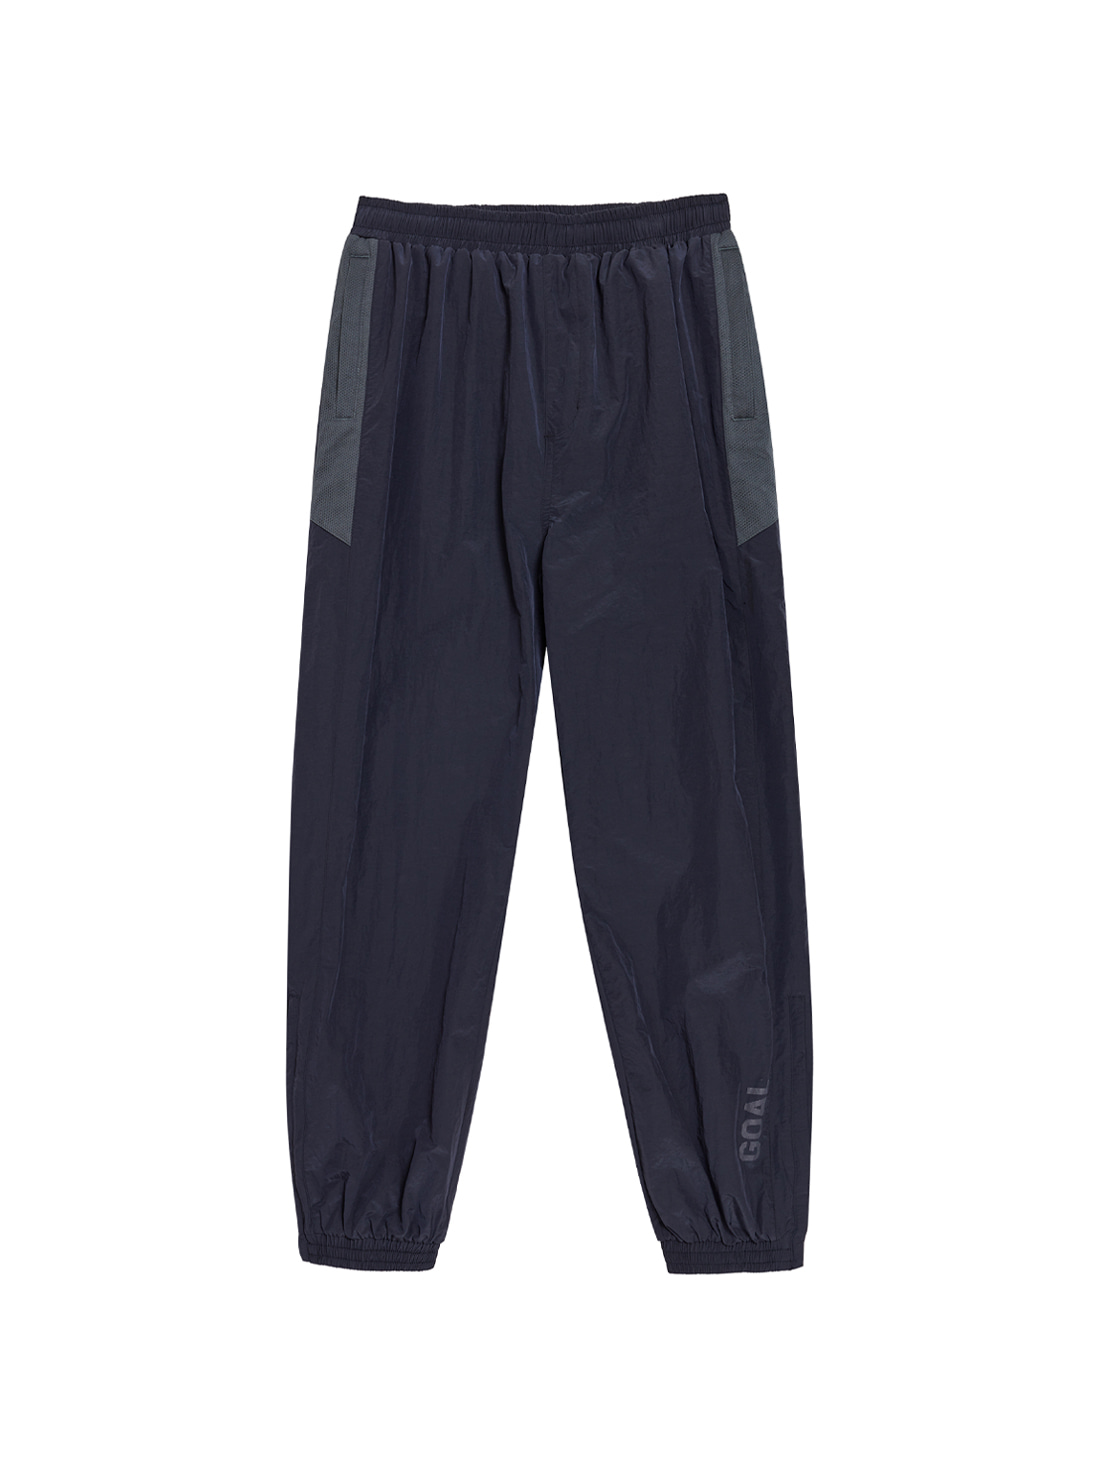 GOALSTUDIO WARMUP PANTS - NAVY